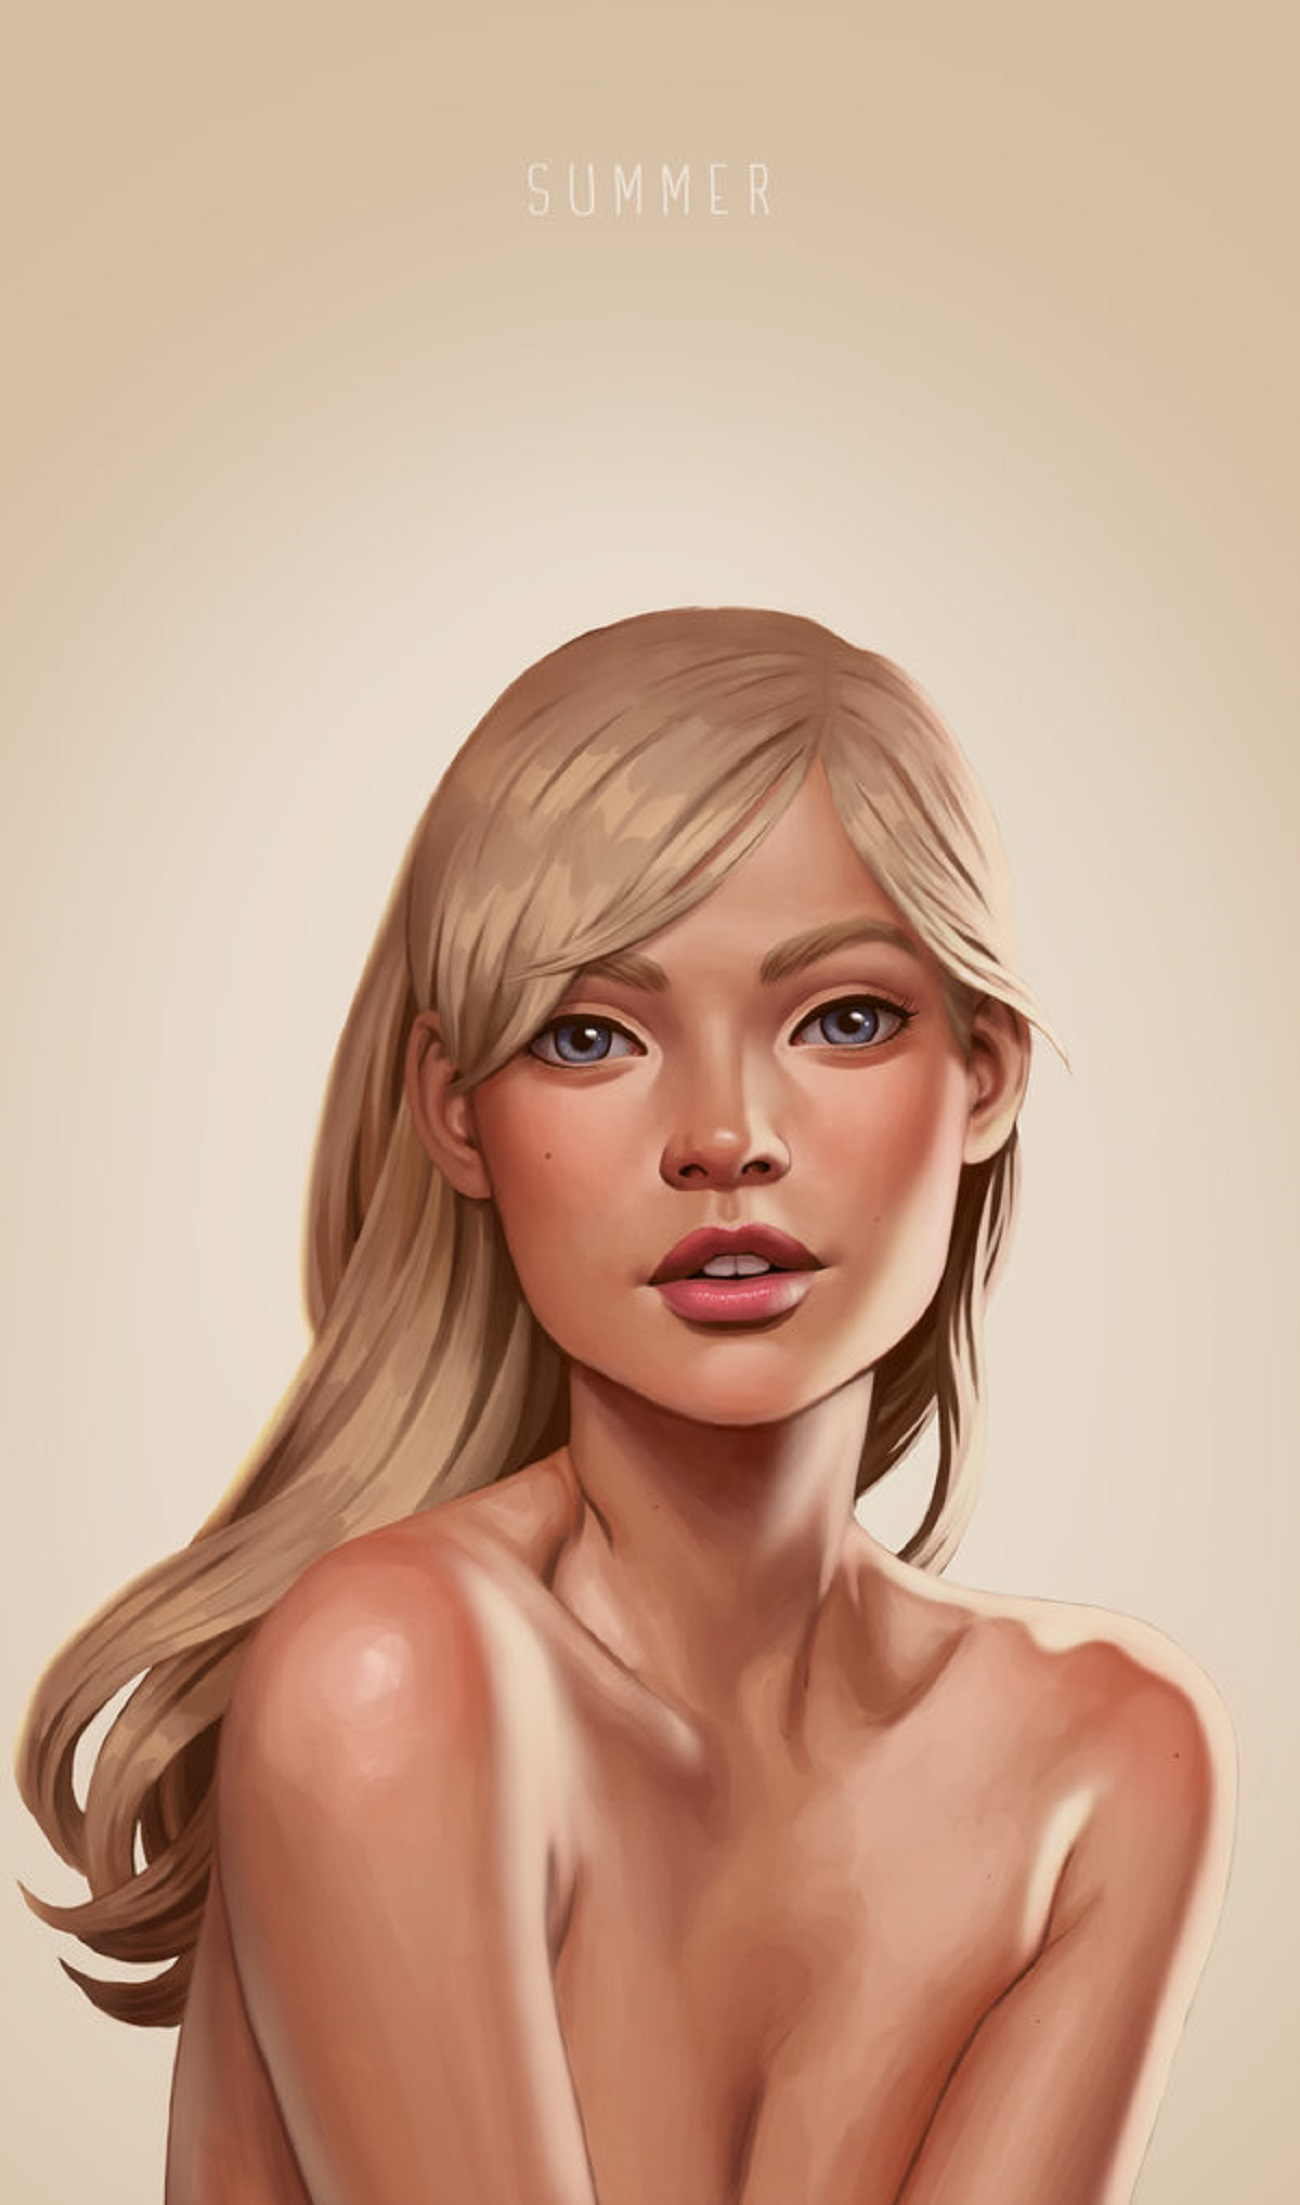 Daniela Uhlig | Paintable.cc Digital Painting Inspiration - Learn the Art of Digital Painting! #digitalpainting #digitalart